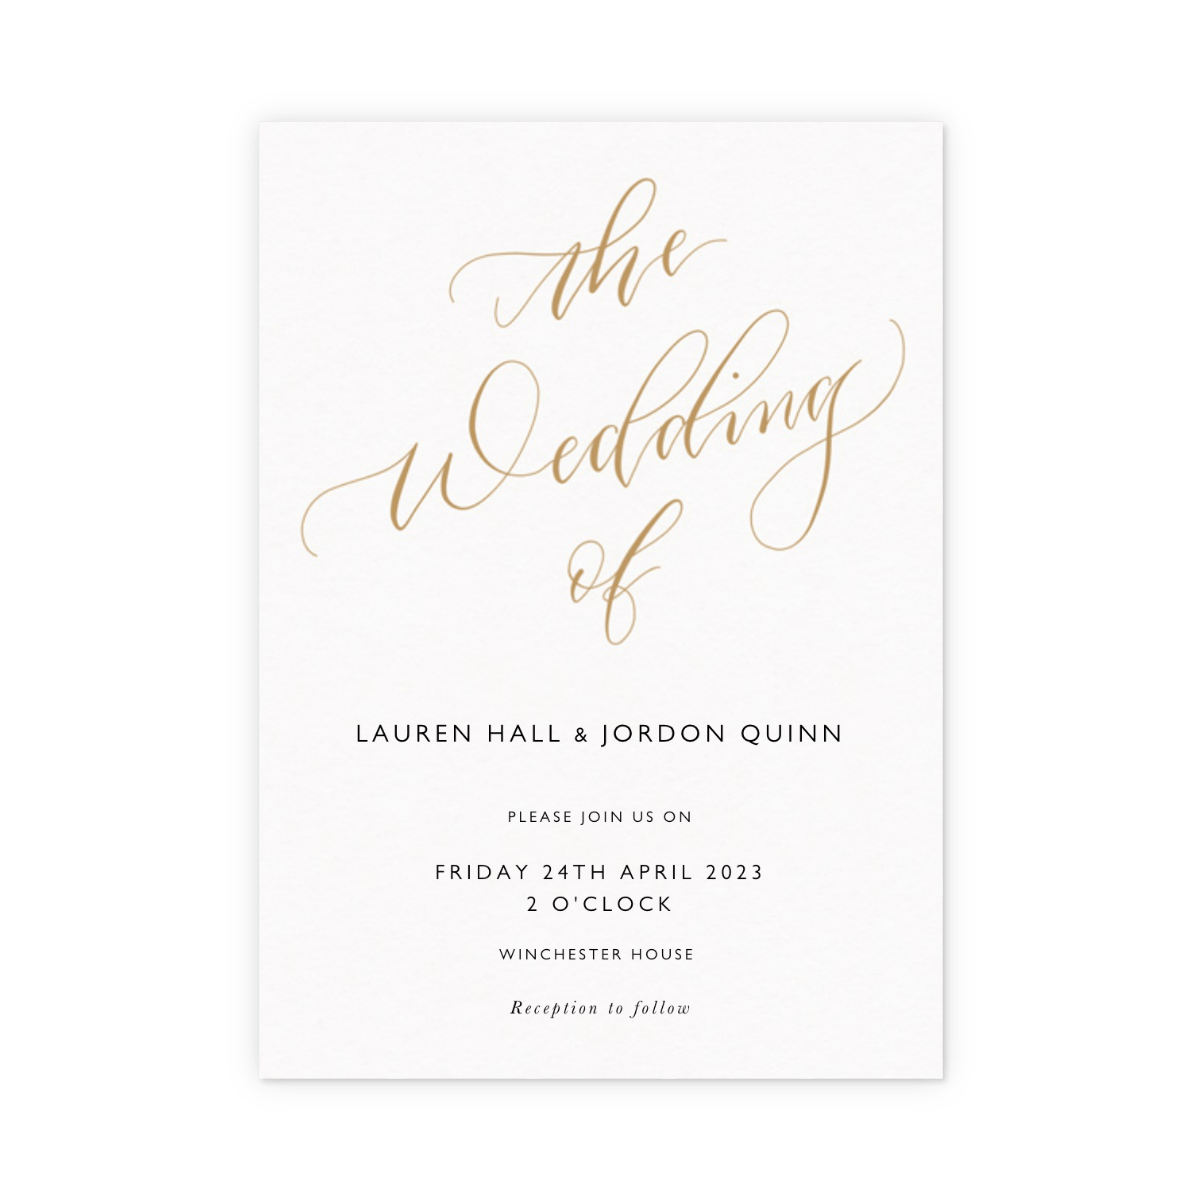 Https%3a%2f%2fwww.papier.com%2fproduct image%2f11662%2f4%2fthe wedding of calligraphy gold 2958 front 1532438581.png?ixlib=rb 1.1